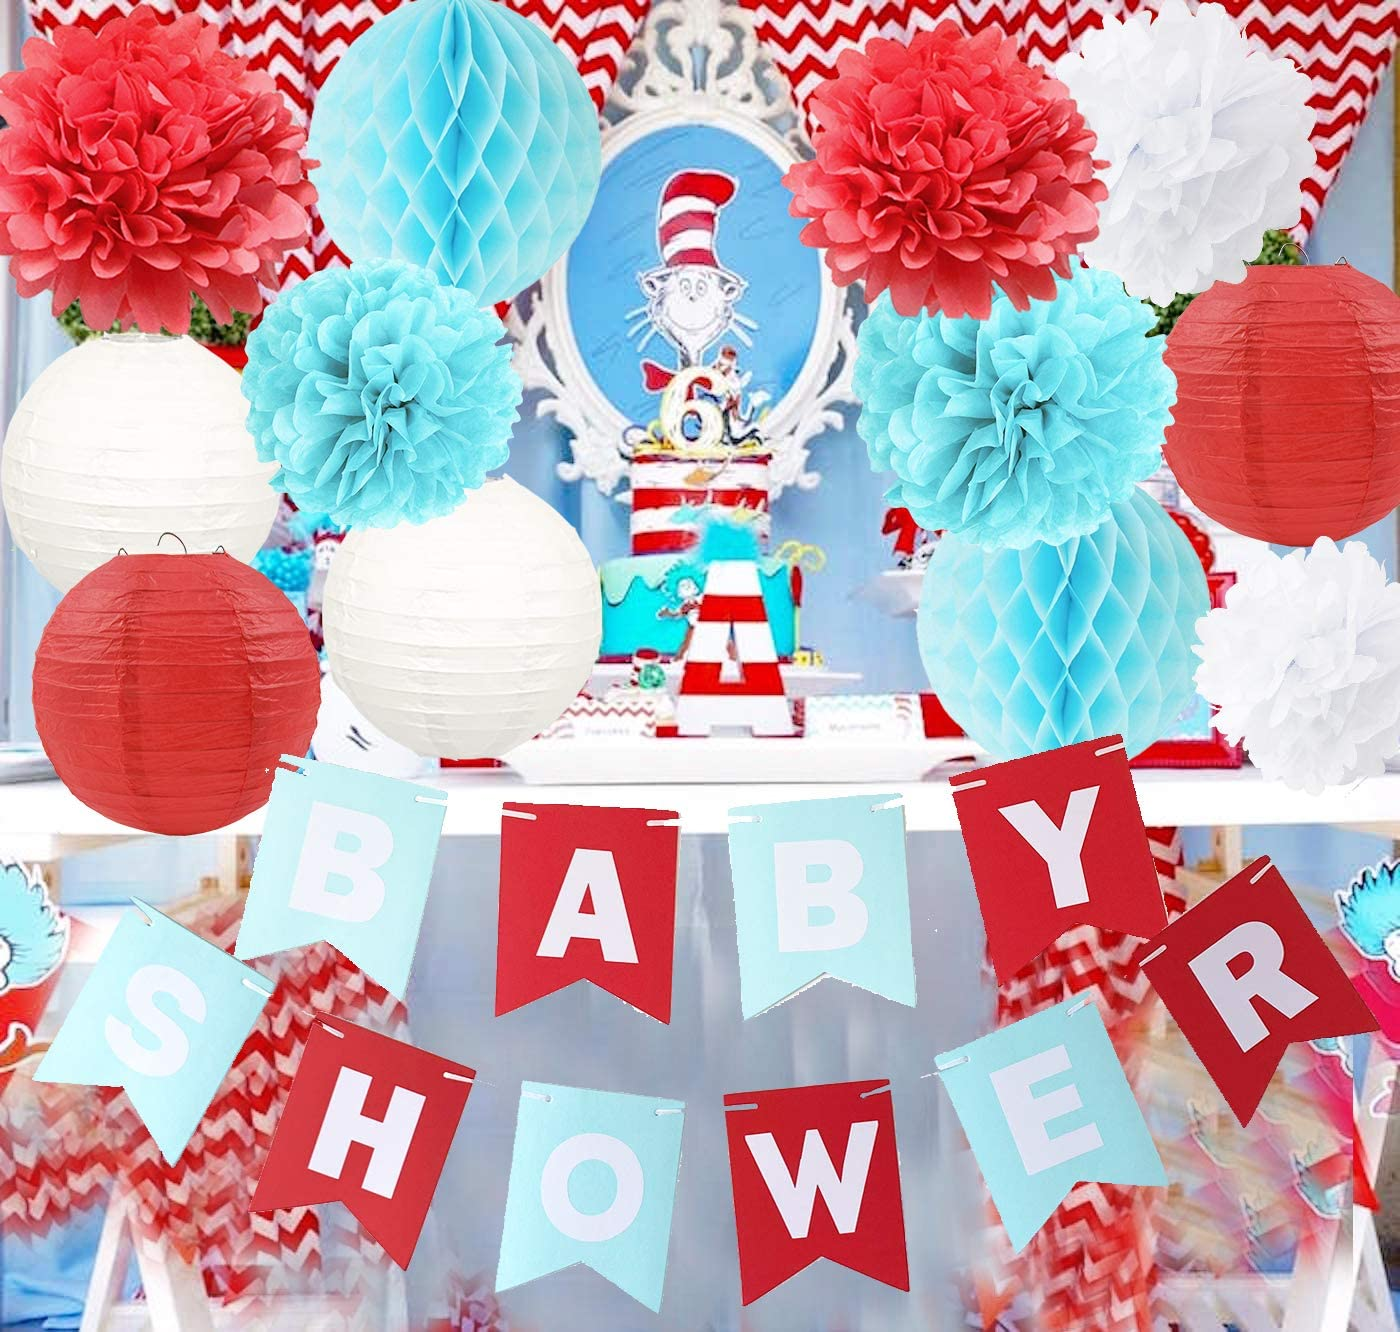 Dr. Suess Cat in The Hat Party/Airplane/Dr Suess Baby Shower Decorations Blue White Red Tissue Paper Flower Honeycomb Balls/Circus Carnival Party Decorations/Dr. Seuss Cat in The Hat Baby Shower